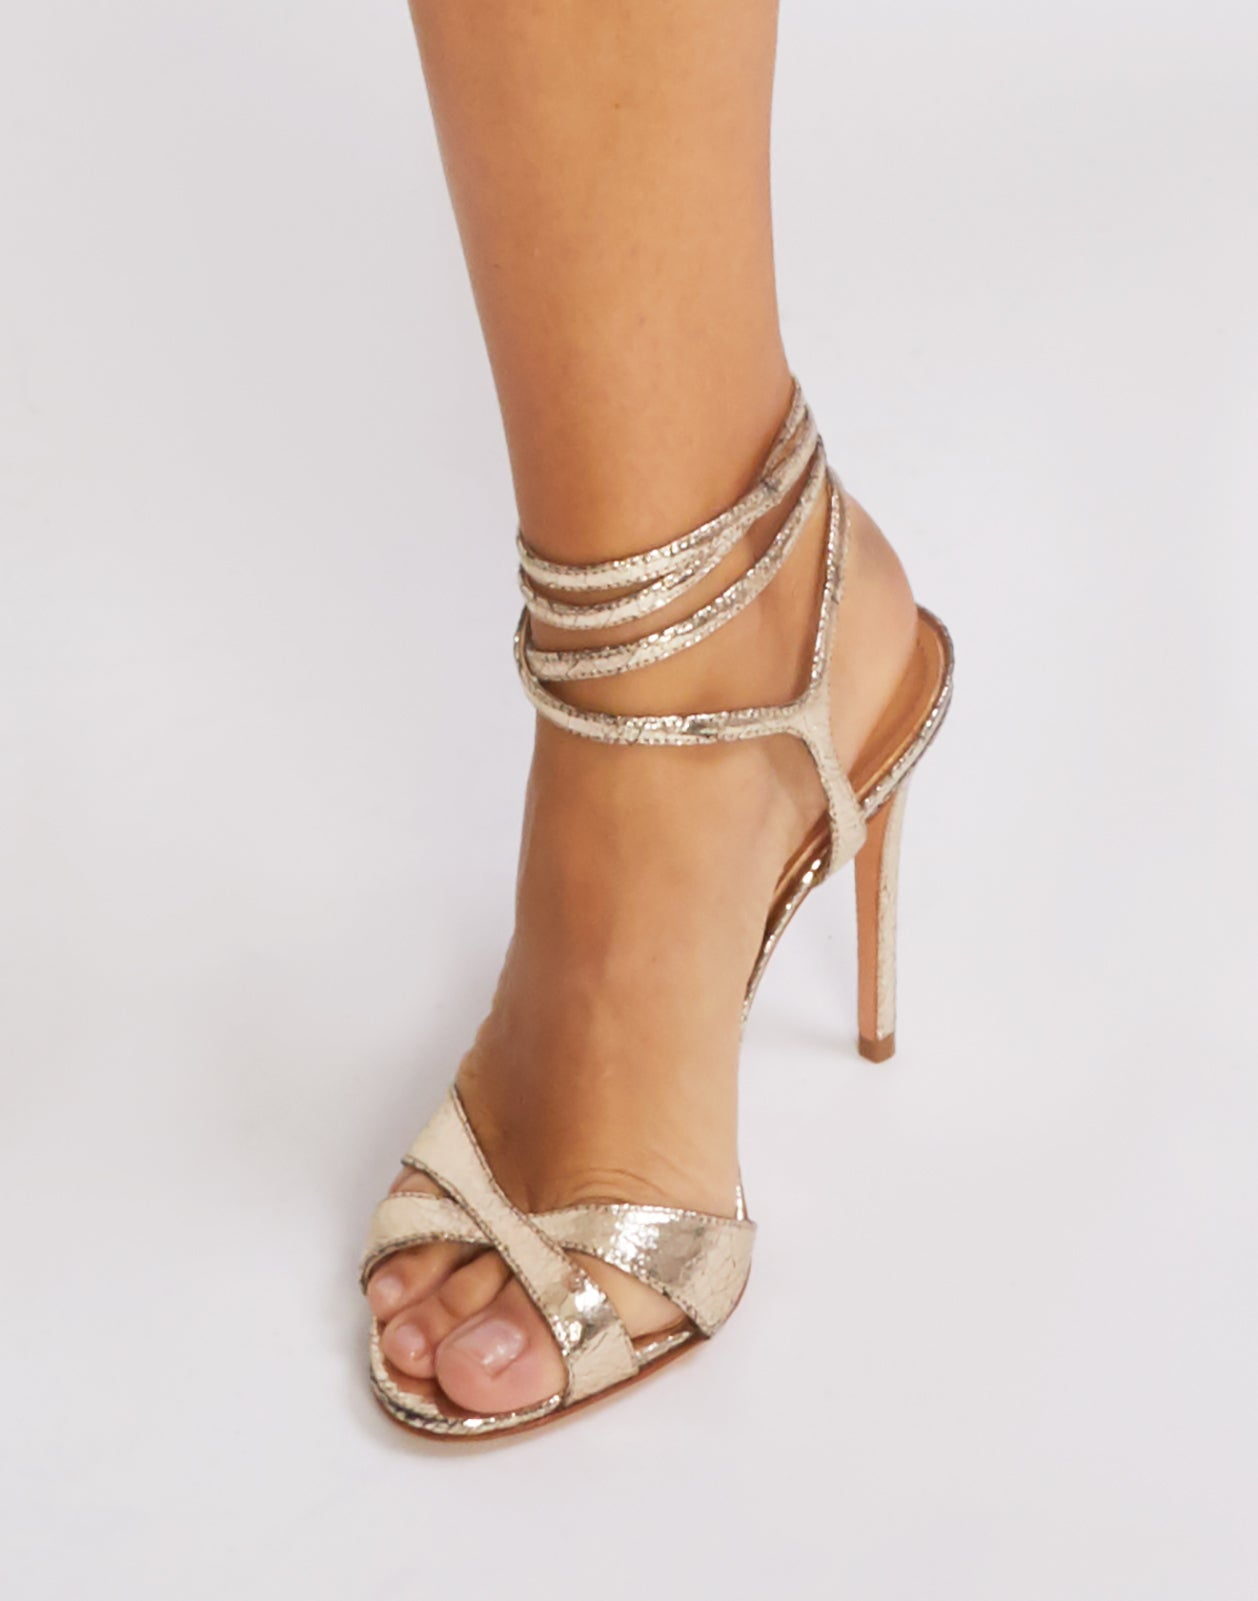 Front view of gold metallic stiletto heels with ankle straps